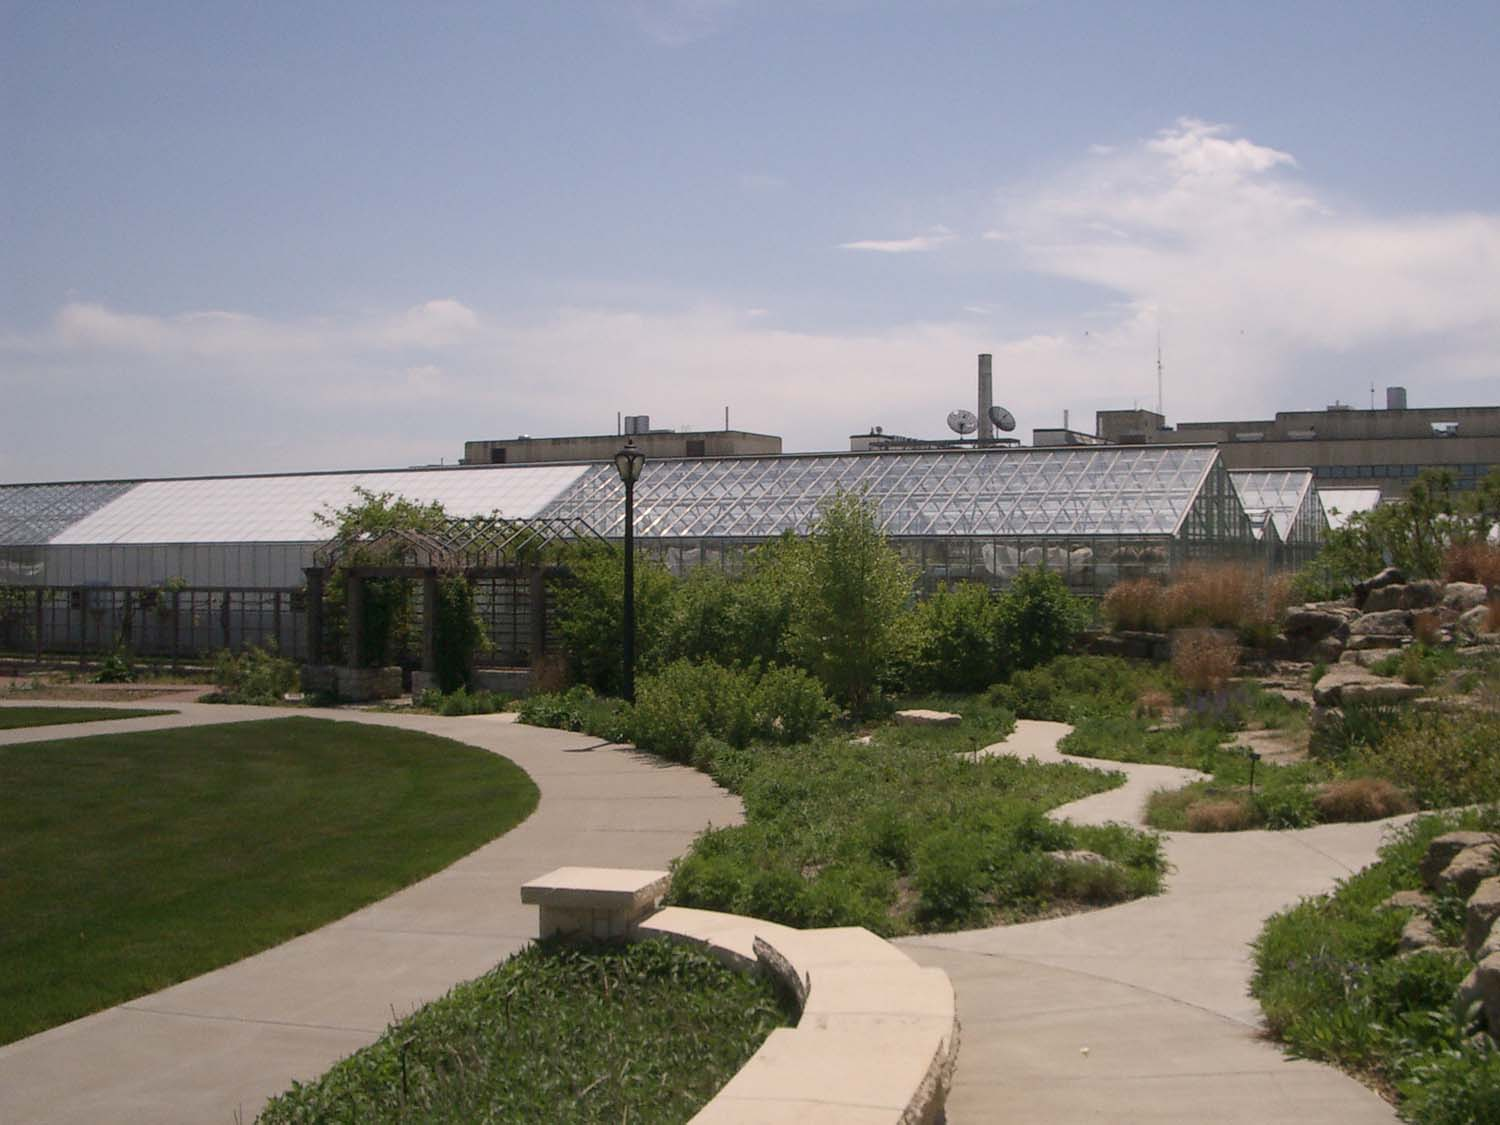 KSU greenhouse 05 06 (2).JPG